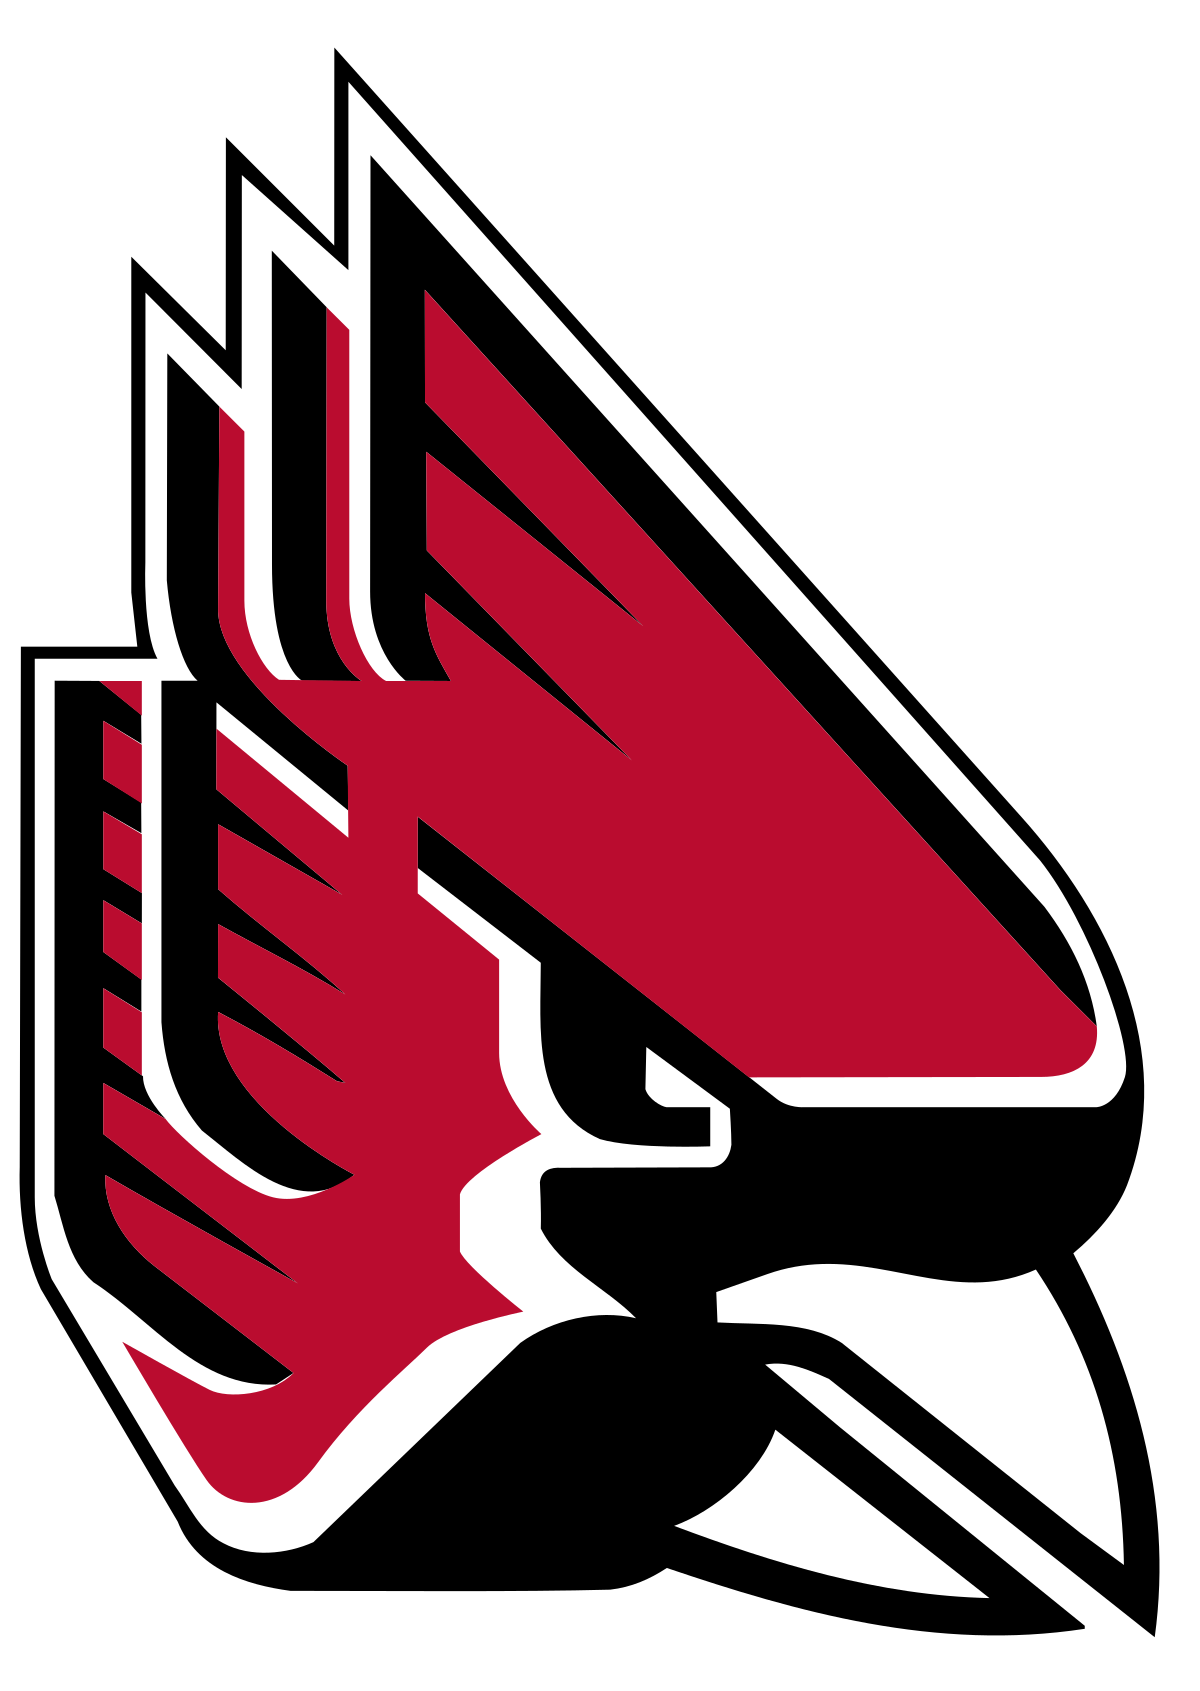 Ball state logo png. Cardinals wikipedia